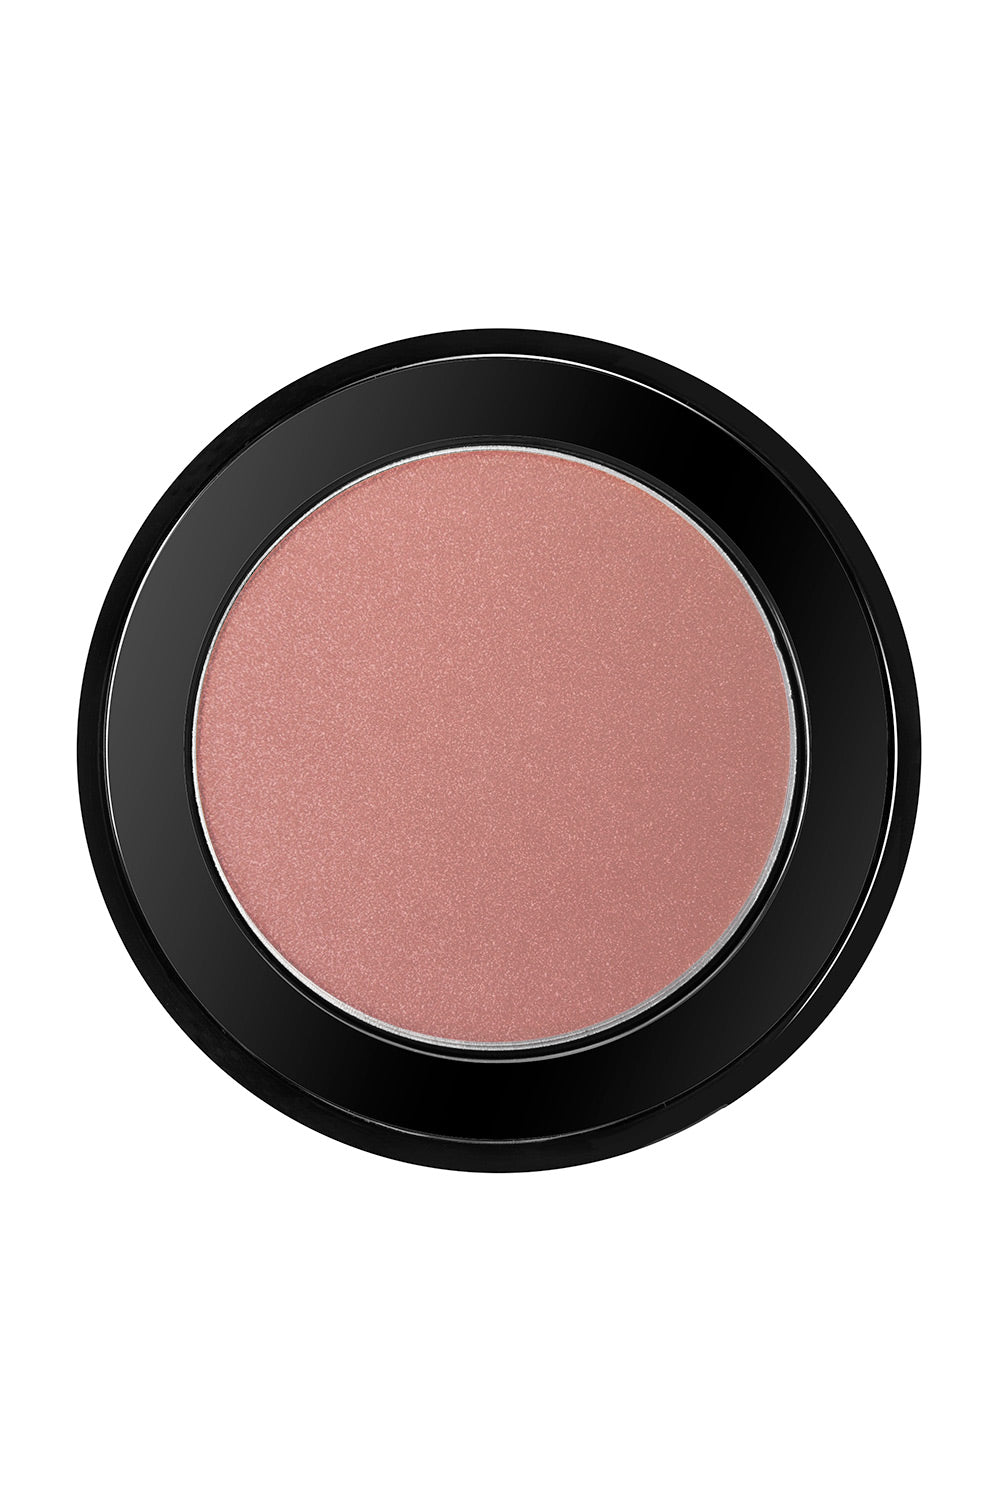 Type 2 Cremewear Blush - Nutty Berry